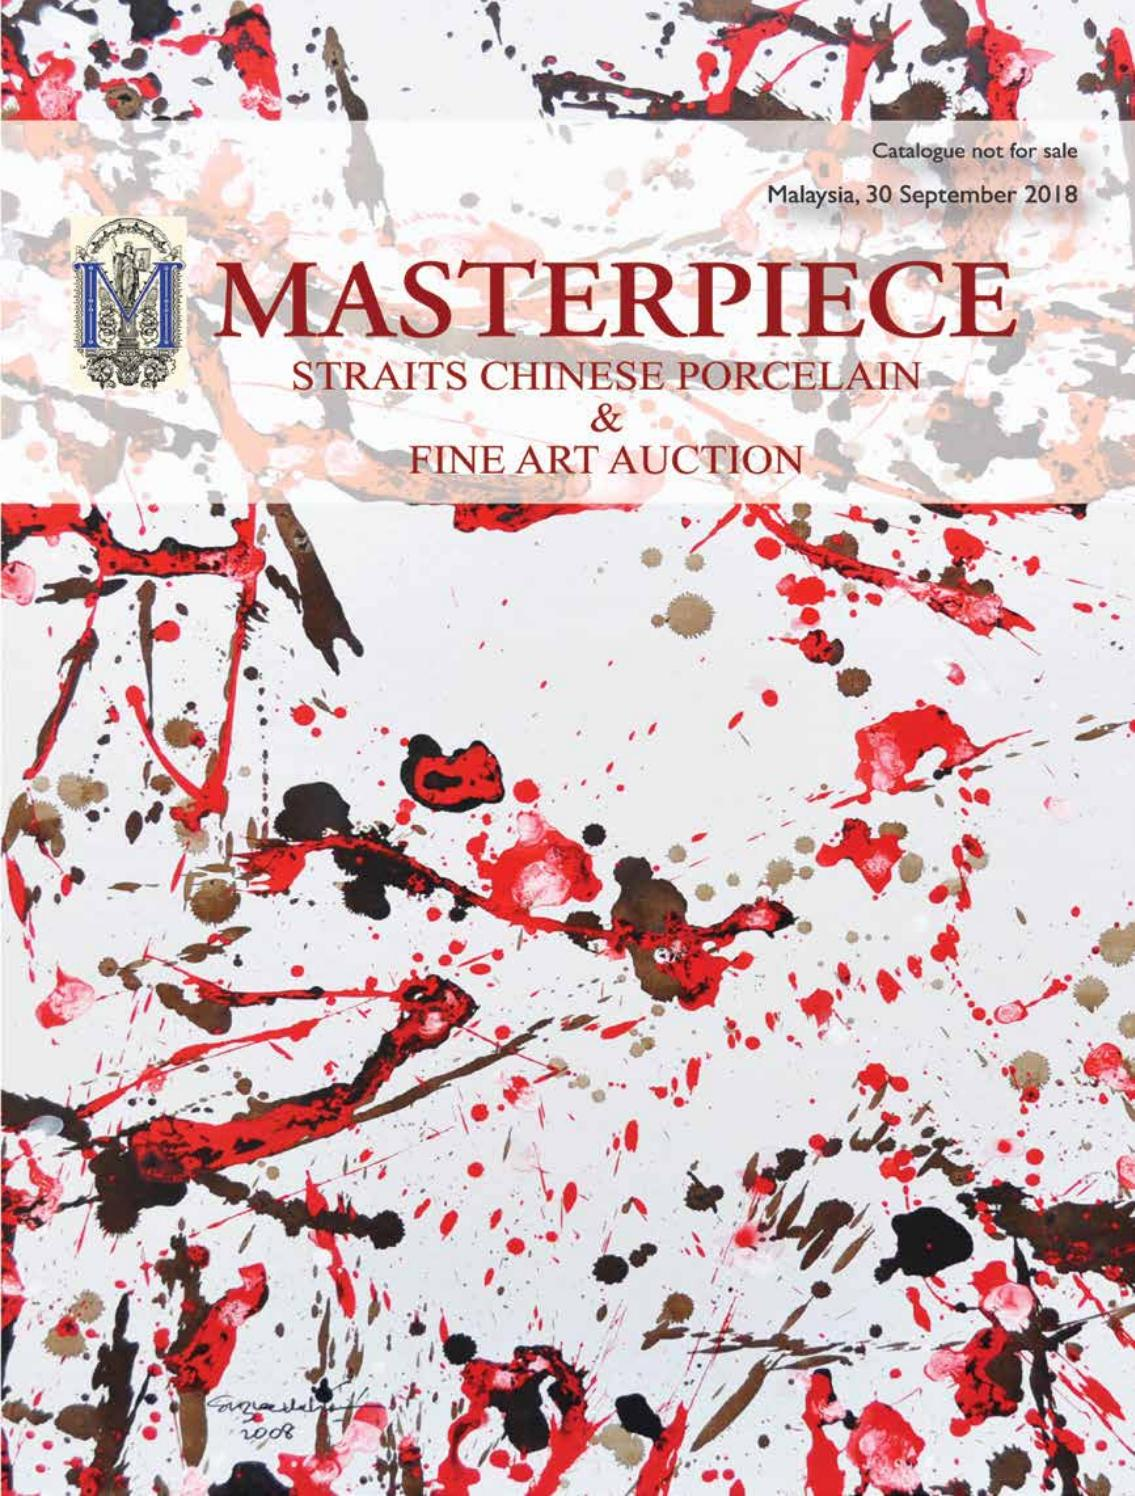 Masterpiece Malaysia By Auction Issuu Hsiung Tan Tieh Ta Wan Box Besar Isi 12 Kecil